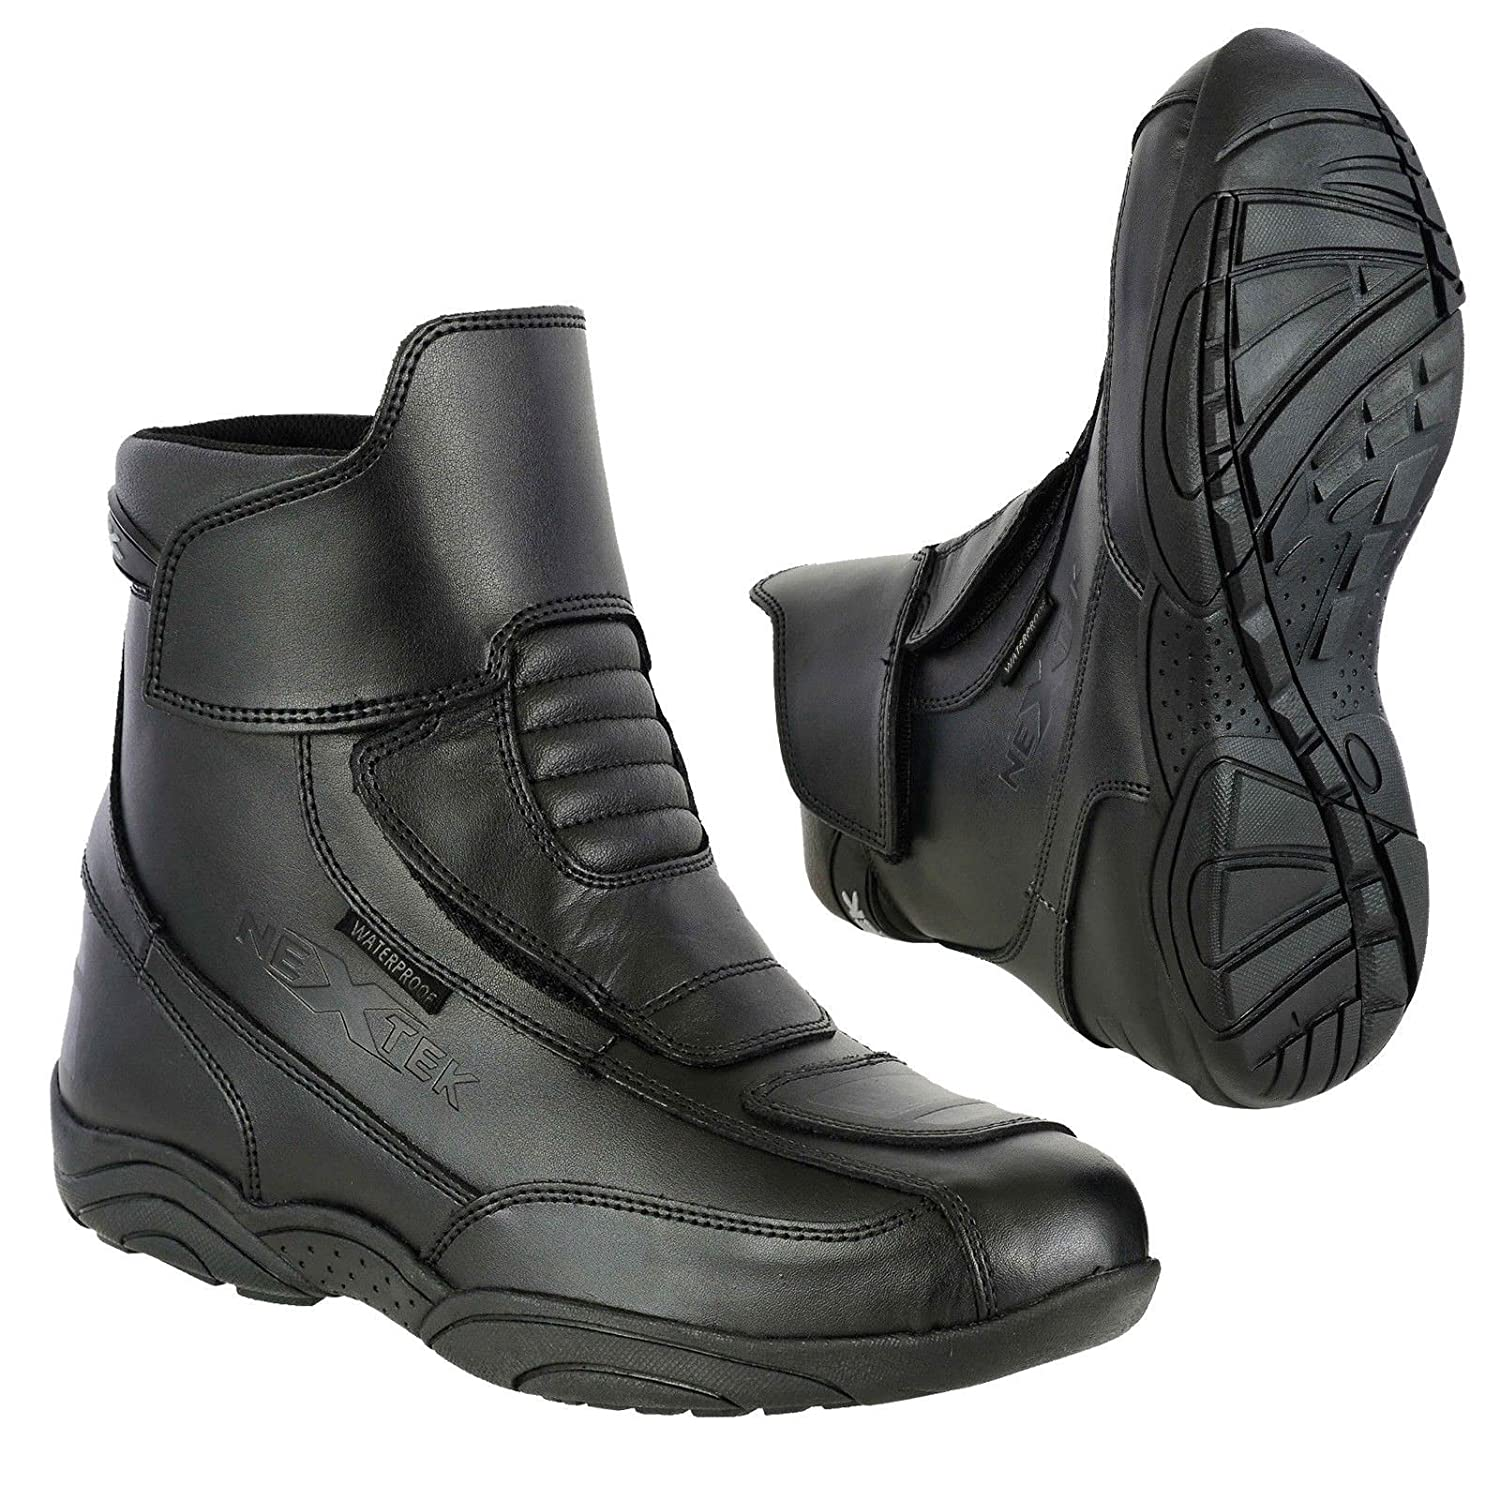 Full Black-UK 12 Motorbike Boot Zip Free Shoe Armoured Short Ankle Racing Sports Urban Touring Cruise Leather Motorcycle Shoes